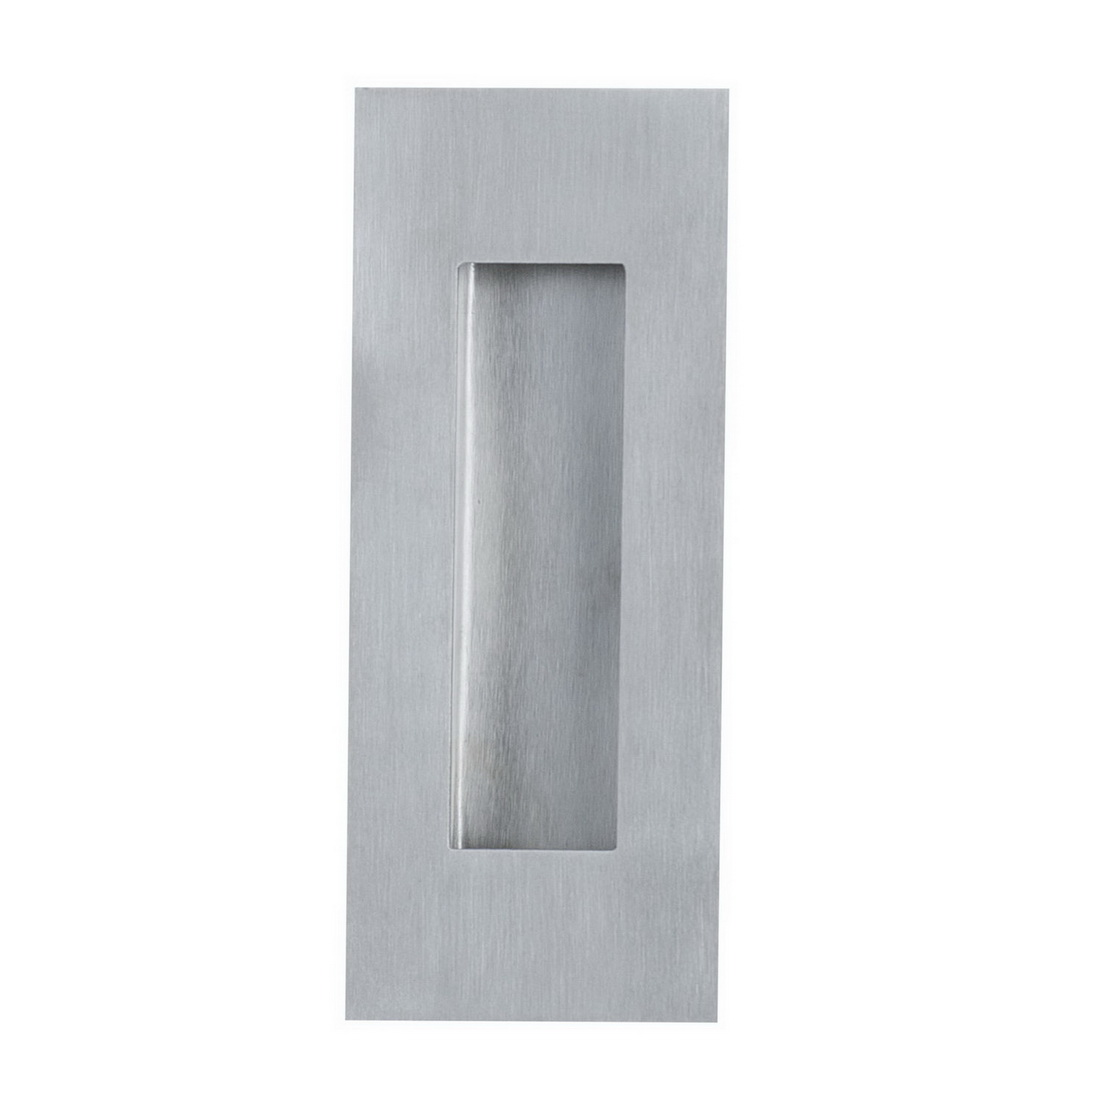 Rectangular Conceled Fix Flush Pull 120 x 40 x 12mm Brushed Stainless Steel 981120SS